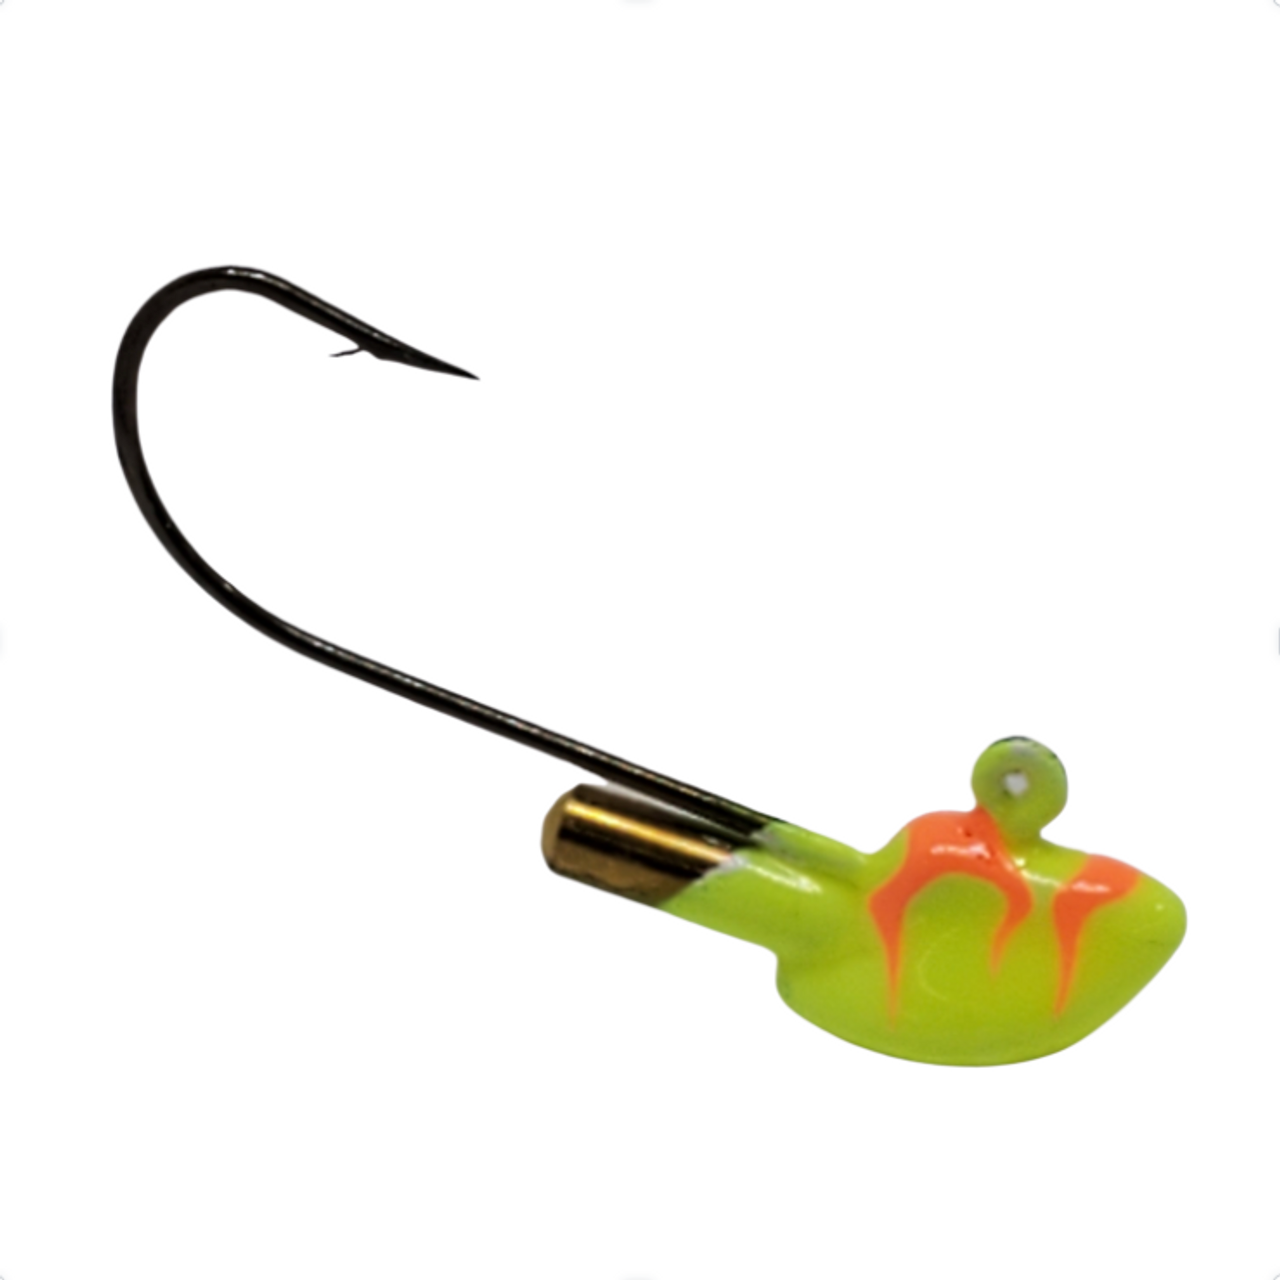 """The Rattle Jig Head has a high quality durable BIG SKY powder paint in our KRYPTONITE GLOW.  Comes with a Super Strong Eagle Claw hook and a VERY loud brass rattle built into the head.  Erie Stand Up Jigs Erie stand up jigs are very popular for presenting a dynamic presentation on the bottom of a body of water. Originally based on the Erie Rig Lure that first became popular on Lake Erie these quickly gained popularity across North America. Weighted to stand up, you can drop these right to the bottom. The upright display allows anglers to """"river-hook"""" or """"Canadian-style hooking"""" rig their bait on these jigs for a realistic presentation that makes the minnow appear as if its alive and feeding off of bottom. 1/8 oz and ¼ oz are most common size for walleye, but be sure to ask us about heavier weights available with upgraded hooks for river fishing.     http://www.outdoornews.com/2014/11/13/a-simple-minnow-hooking-technique-for-open-water-or-hard-water-fishing-video/"""